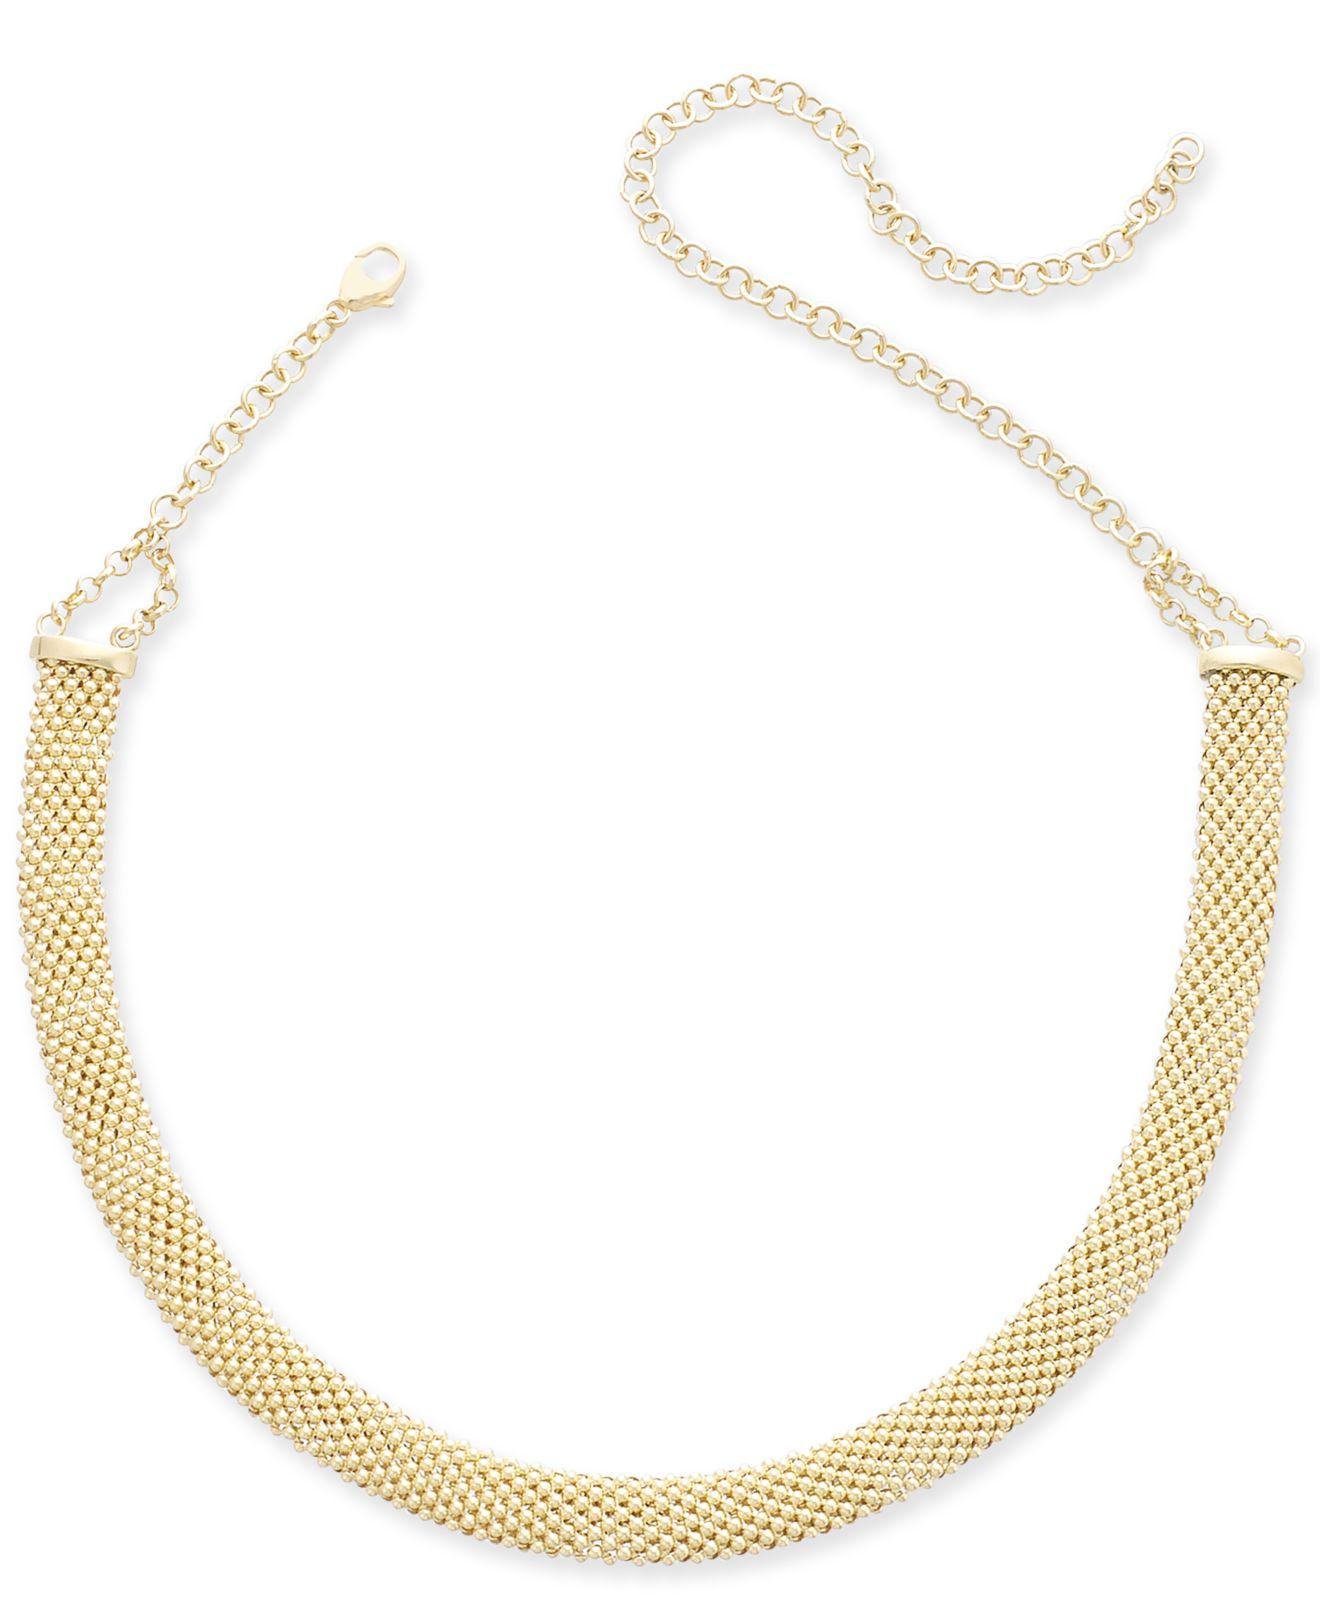 b059e8675d71 Lyst - Macy s Popcorn Mesh Link Choker Necklace In 14k Gold-plated ...